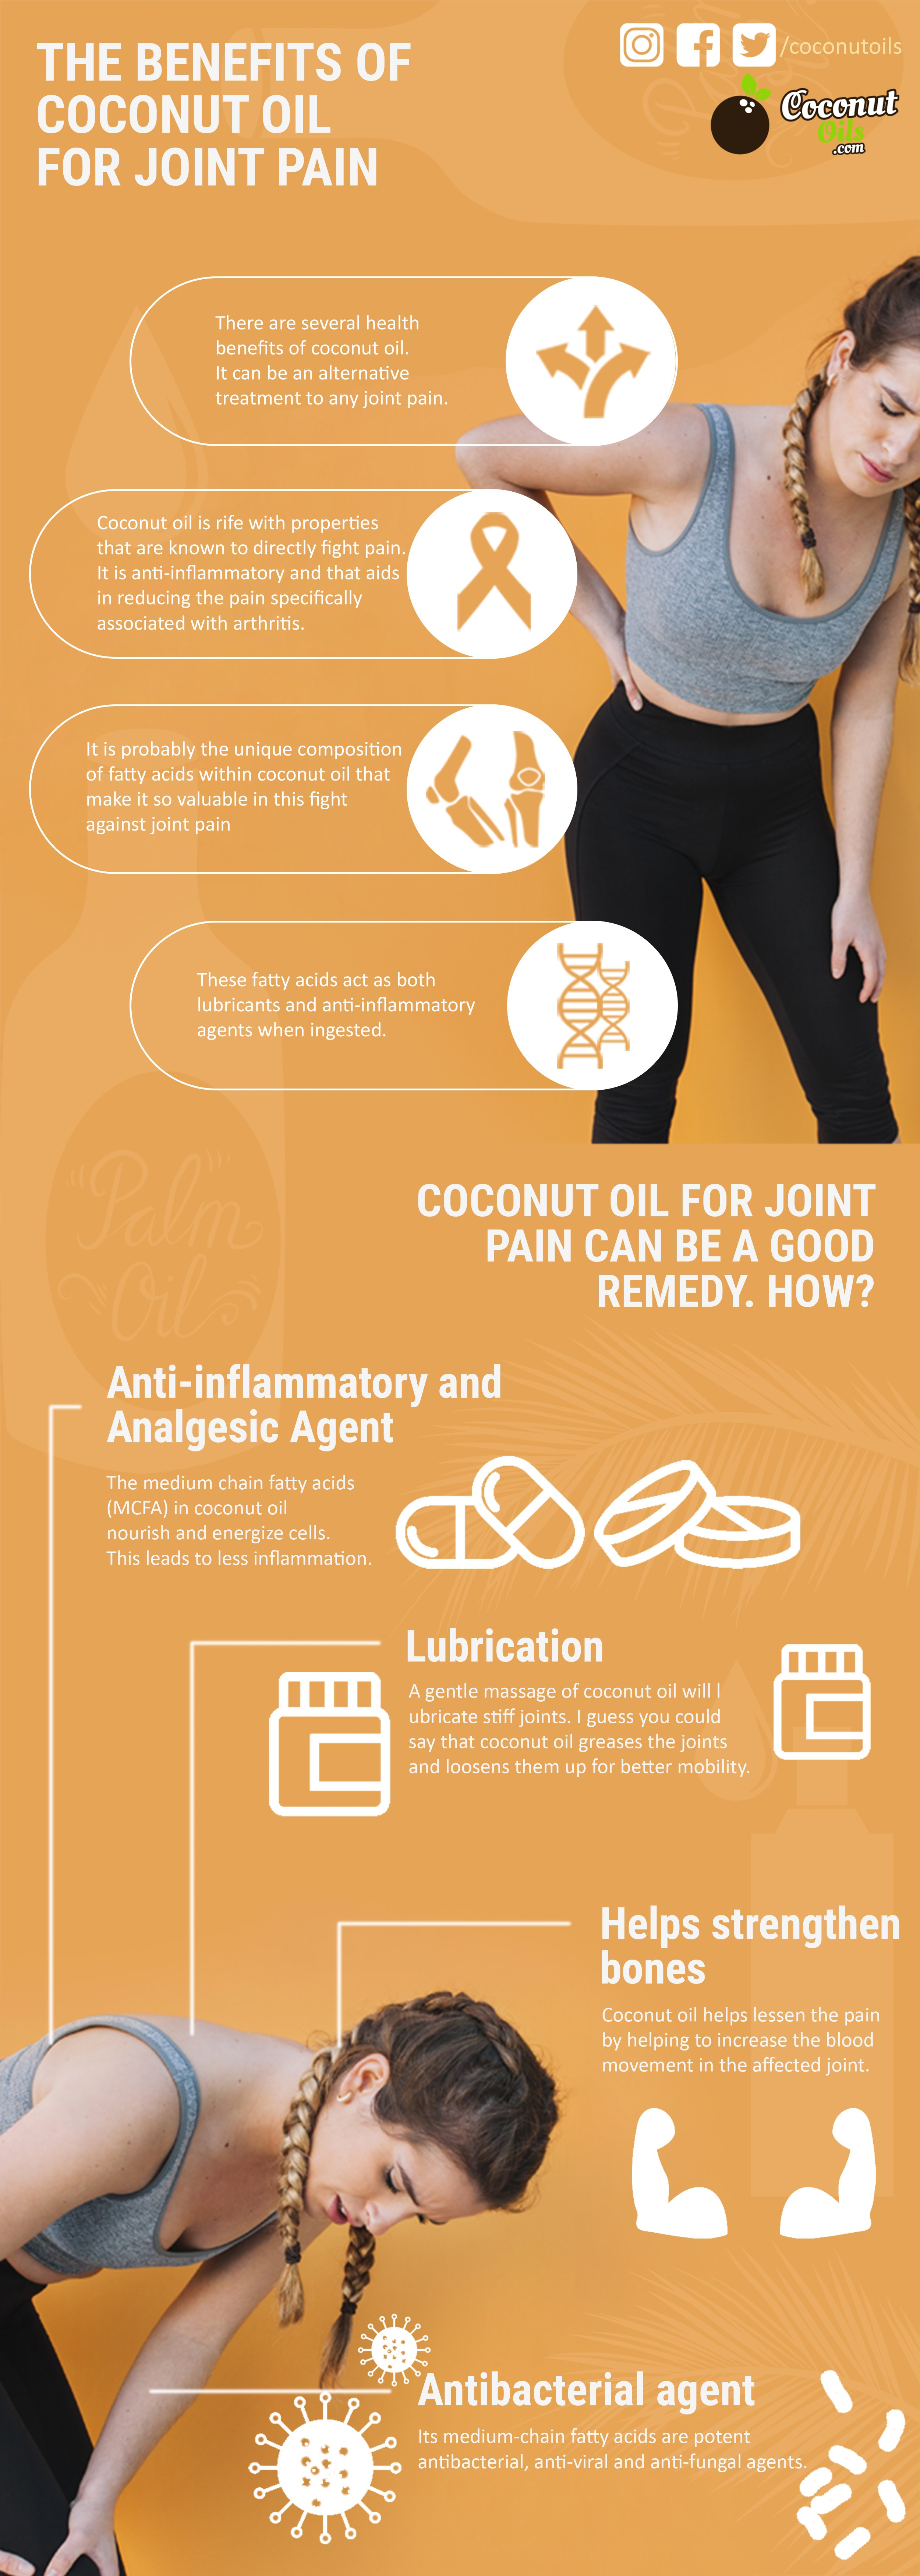 Benefits of Coconut Oil for Joint Pain